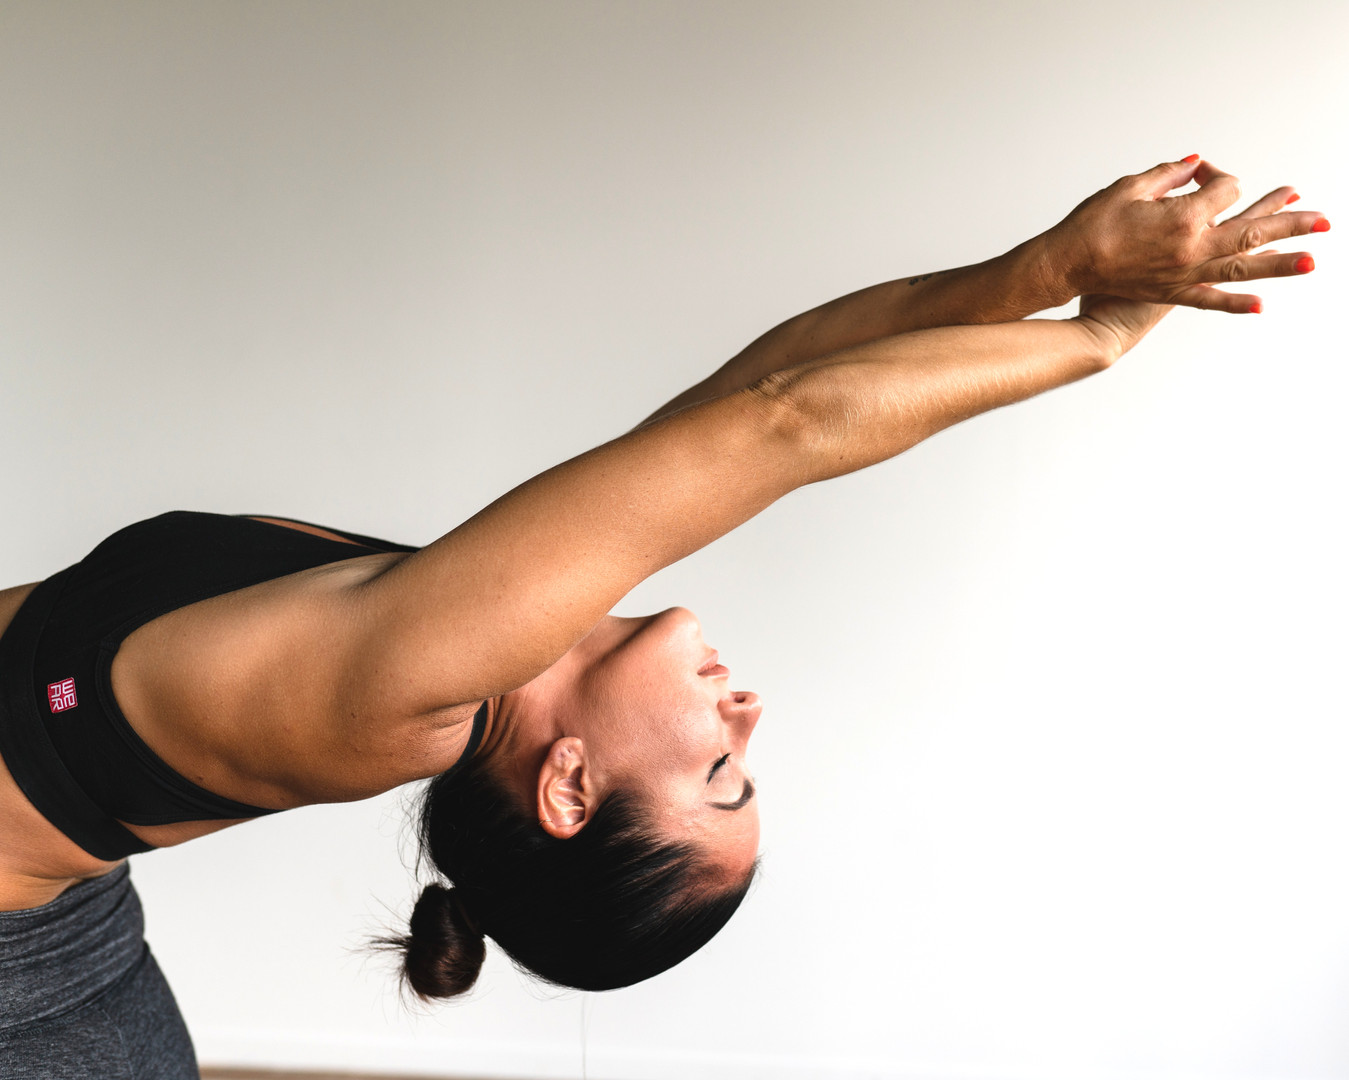 woman%20stretching%20arms_edited.jpg